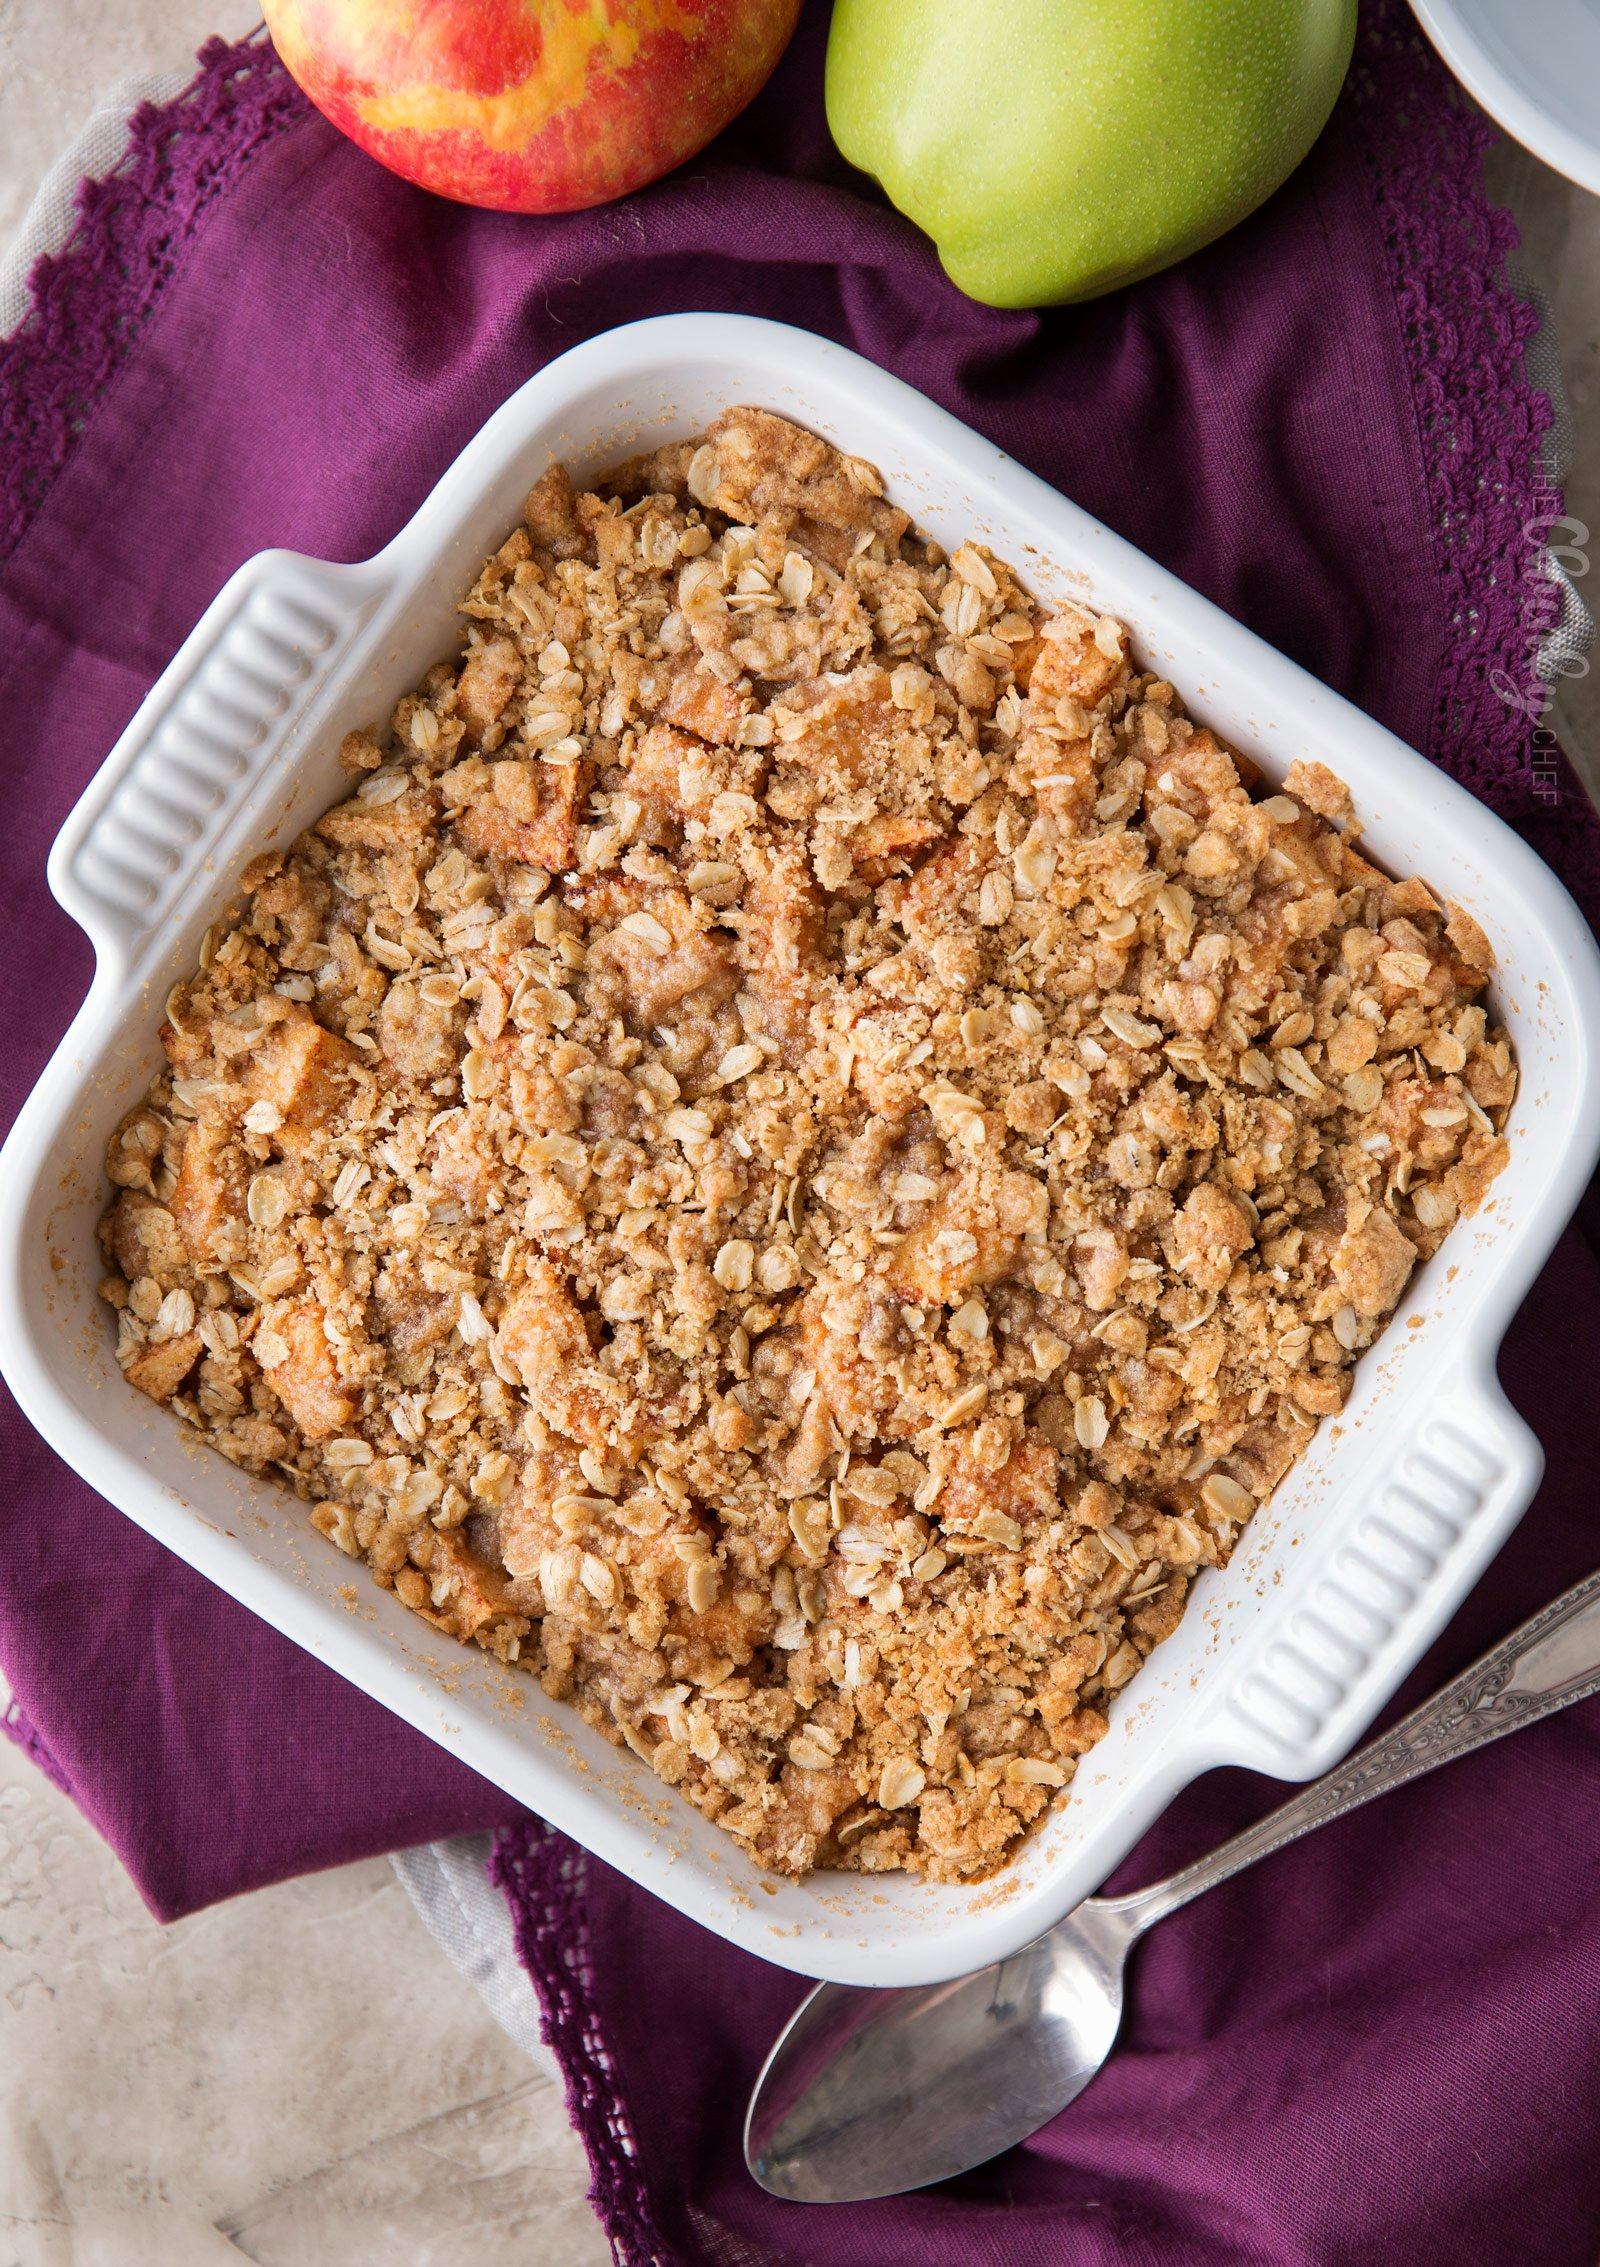 10 Best Apple Crisp Topping Recipes without Oatmeal